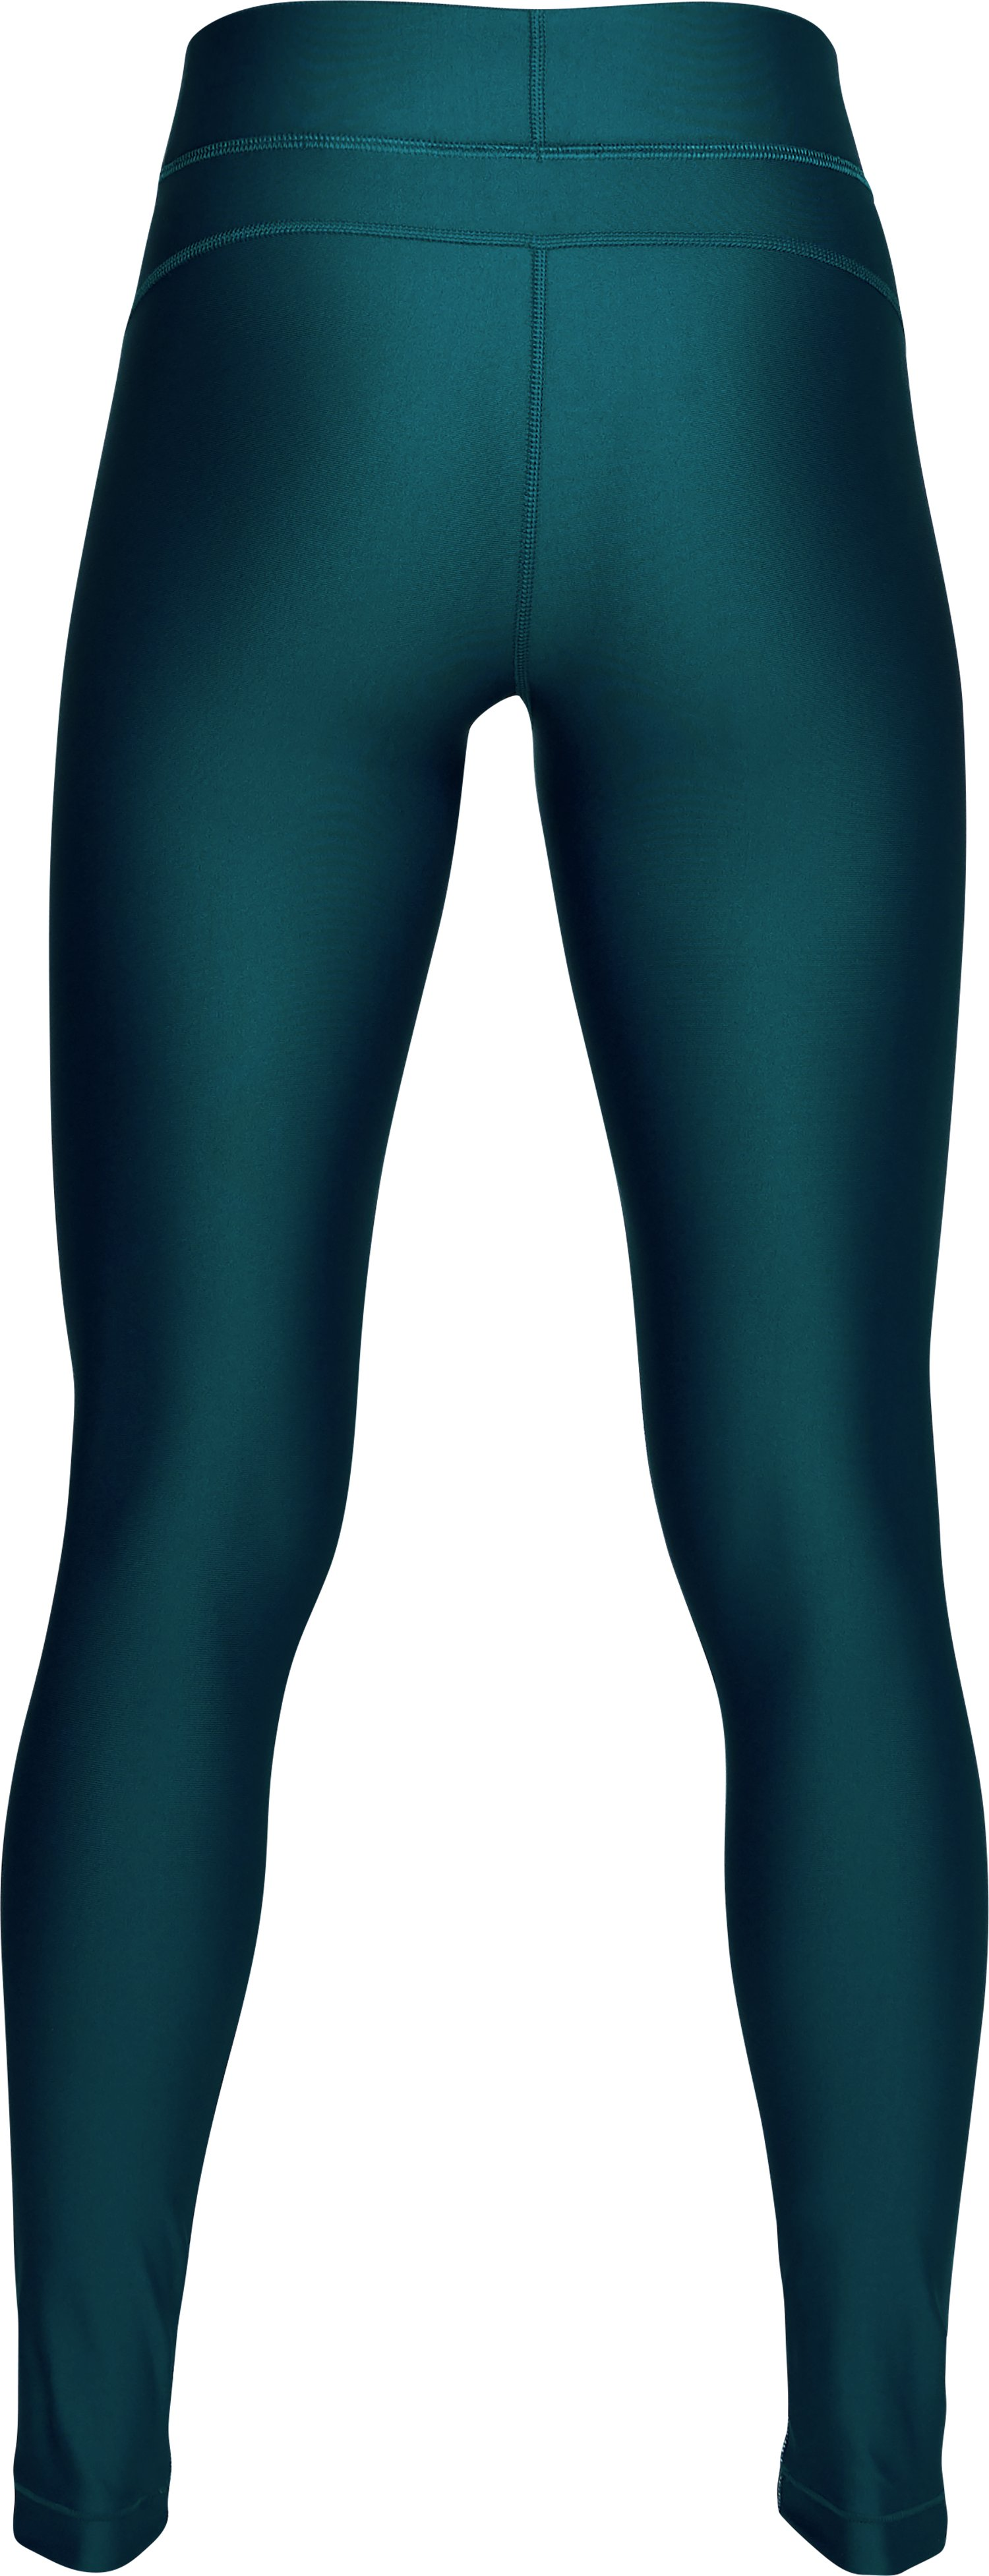 Women's HeatGear® Armour Printed Leggings, TOURMALINE TEAL,